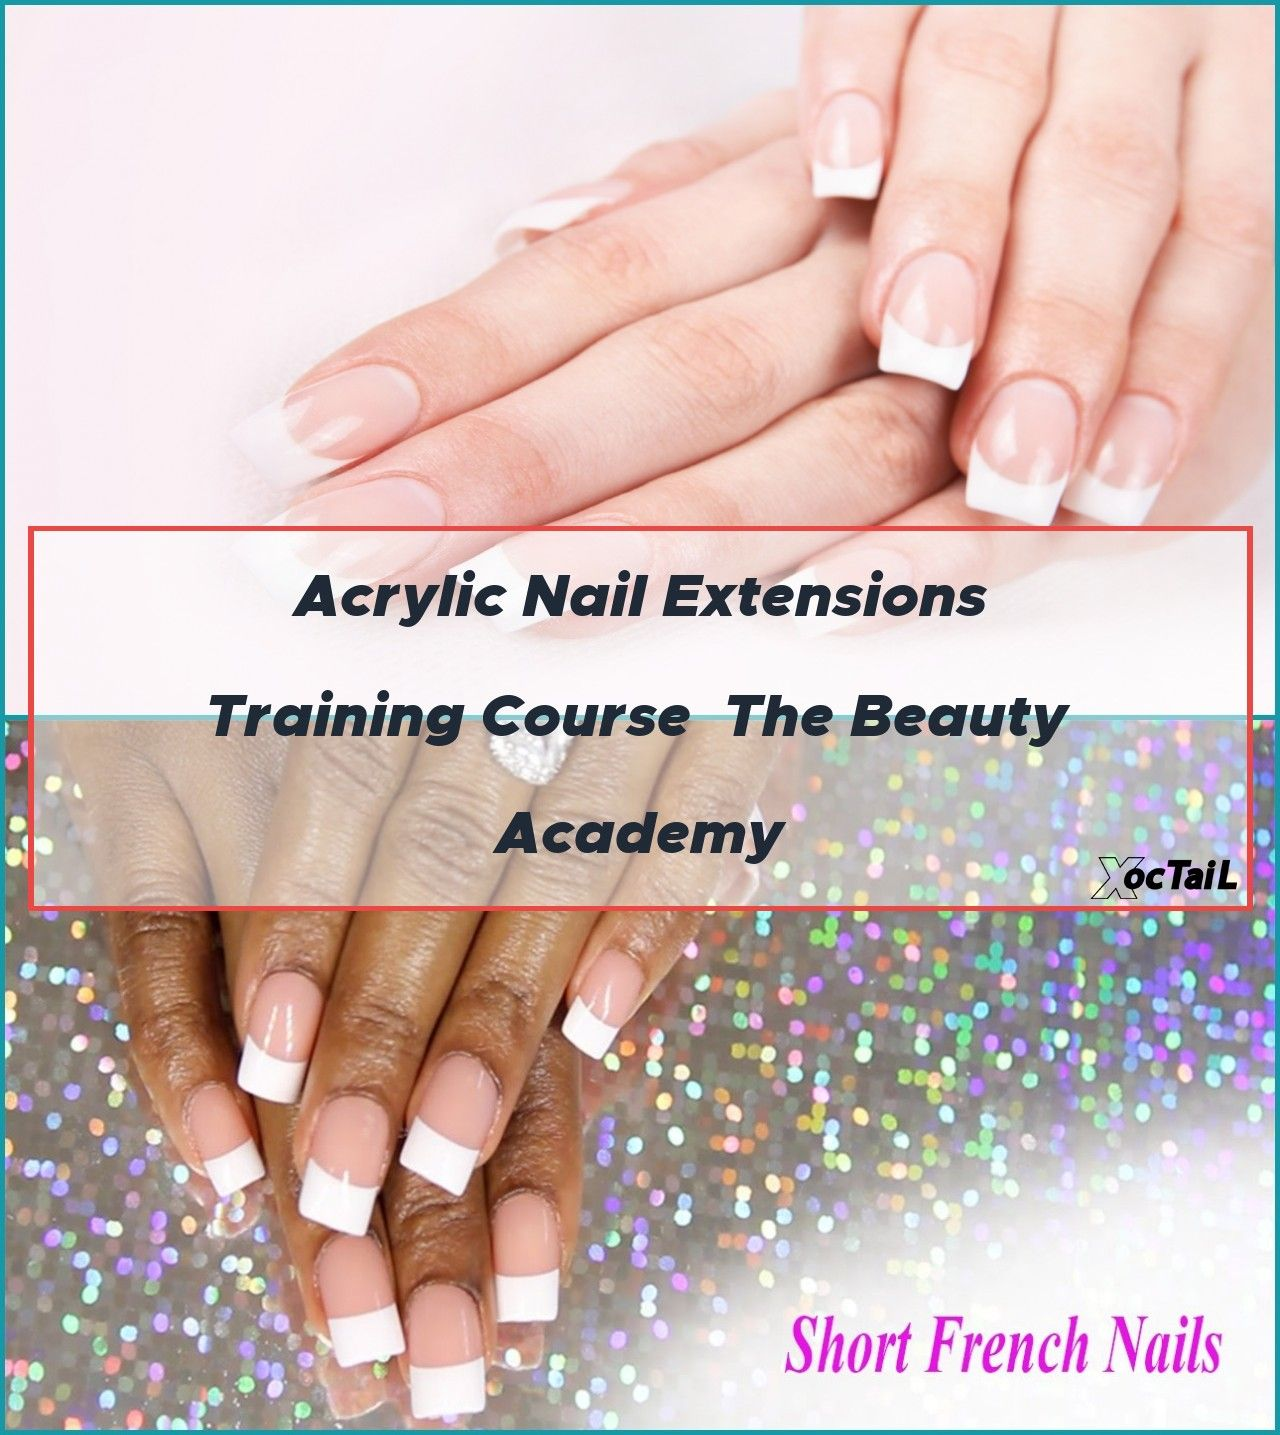 Kiss Short French Press On Nails Applied With Acrylic In 2020 Acrylic Nail Courses Nails French Nails